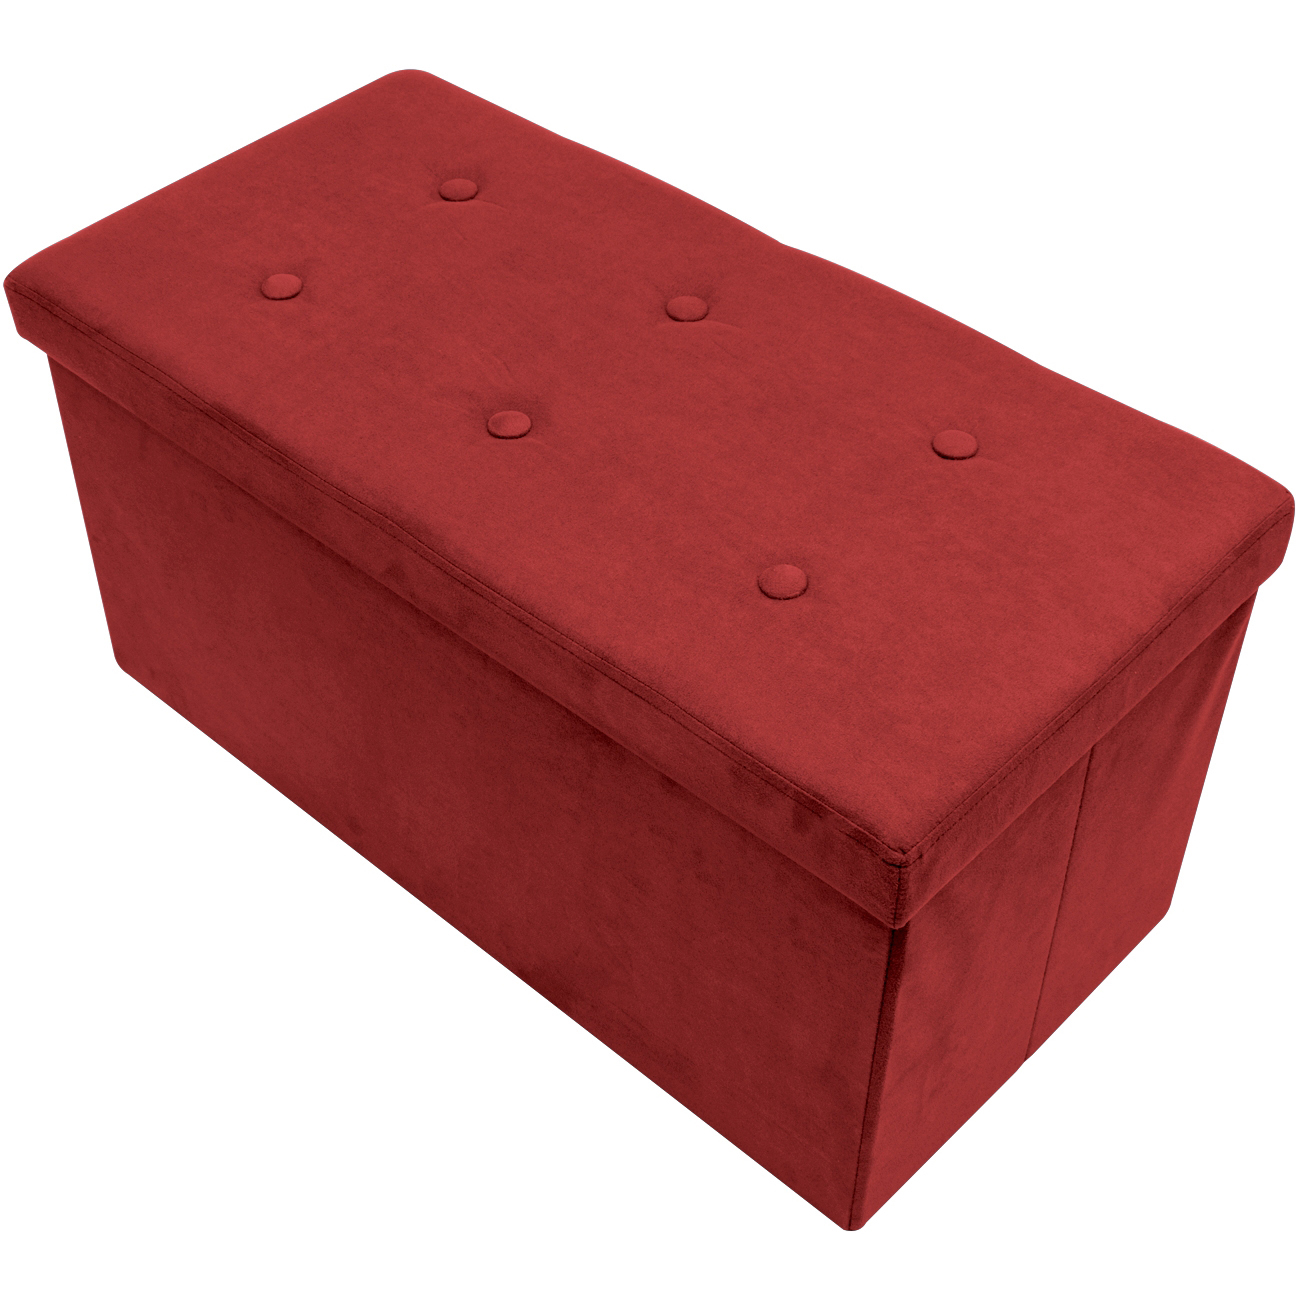 Sorbus Storage Bench Chest  Collapsible/Folding Bench Ottoman with CoverPerfect Hope Chest, Pouffe Ottoman, Coffee Table, Seat, Foot Rest, and more  Contemporary Faux Suede (Small)